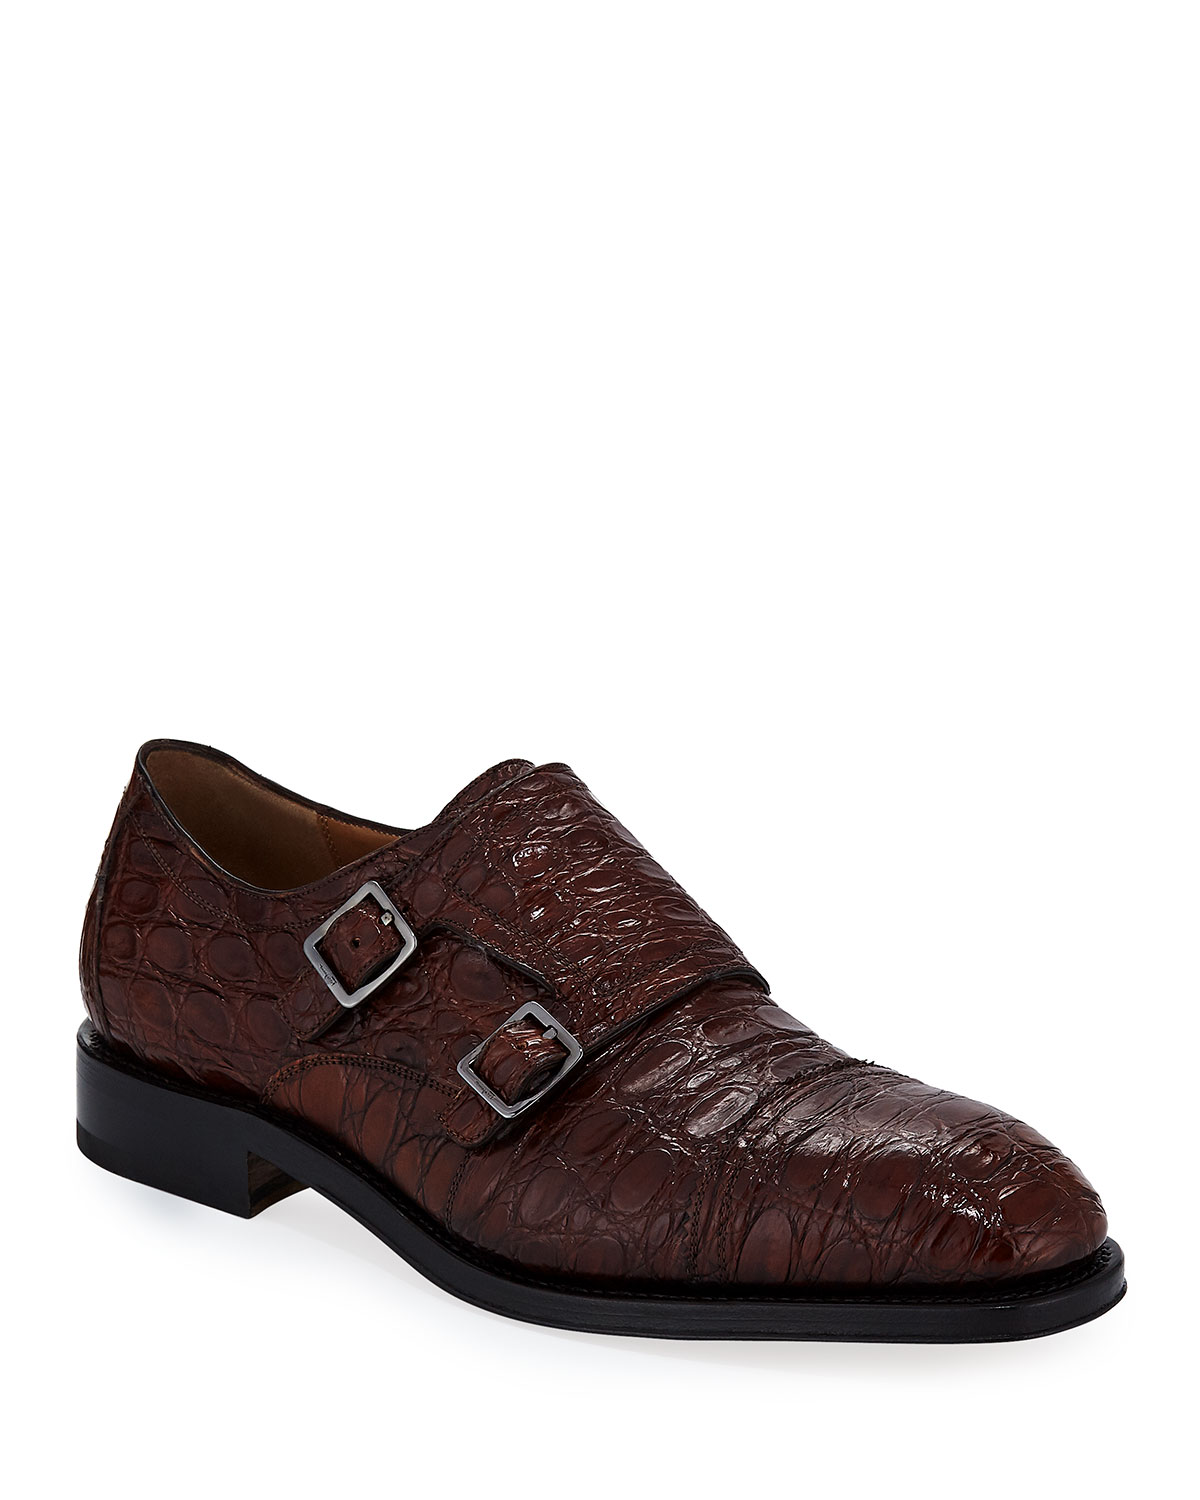 143efe6607be Salvatore Ferragamo Men s Tramezza Crocodile Double-Monk Shoe ...